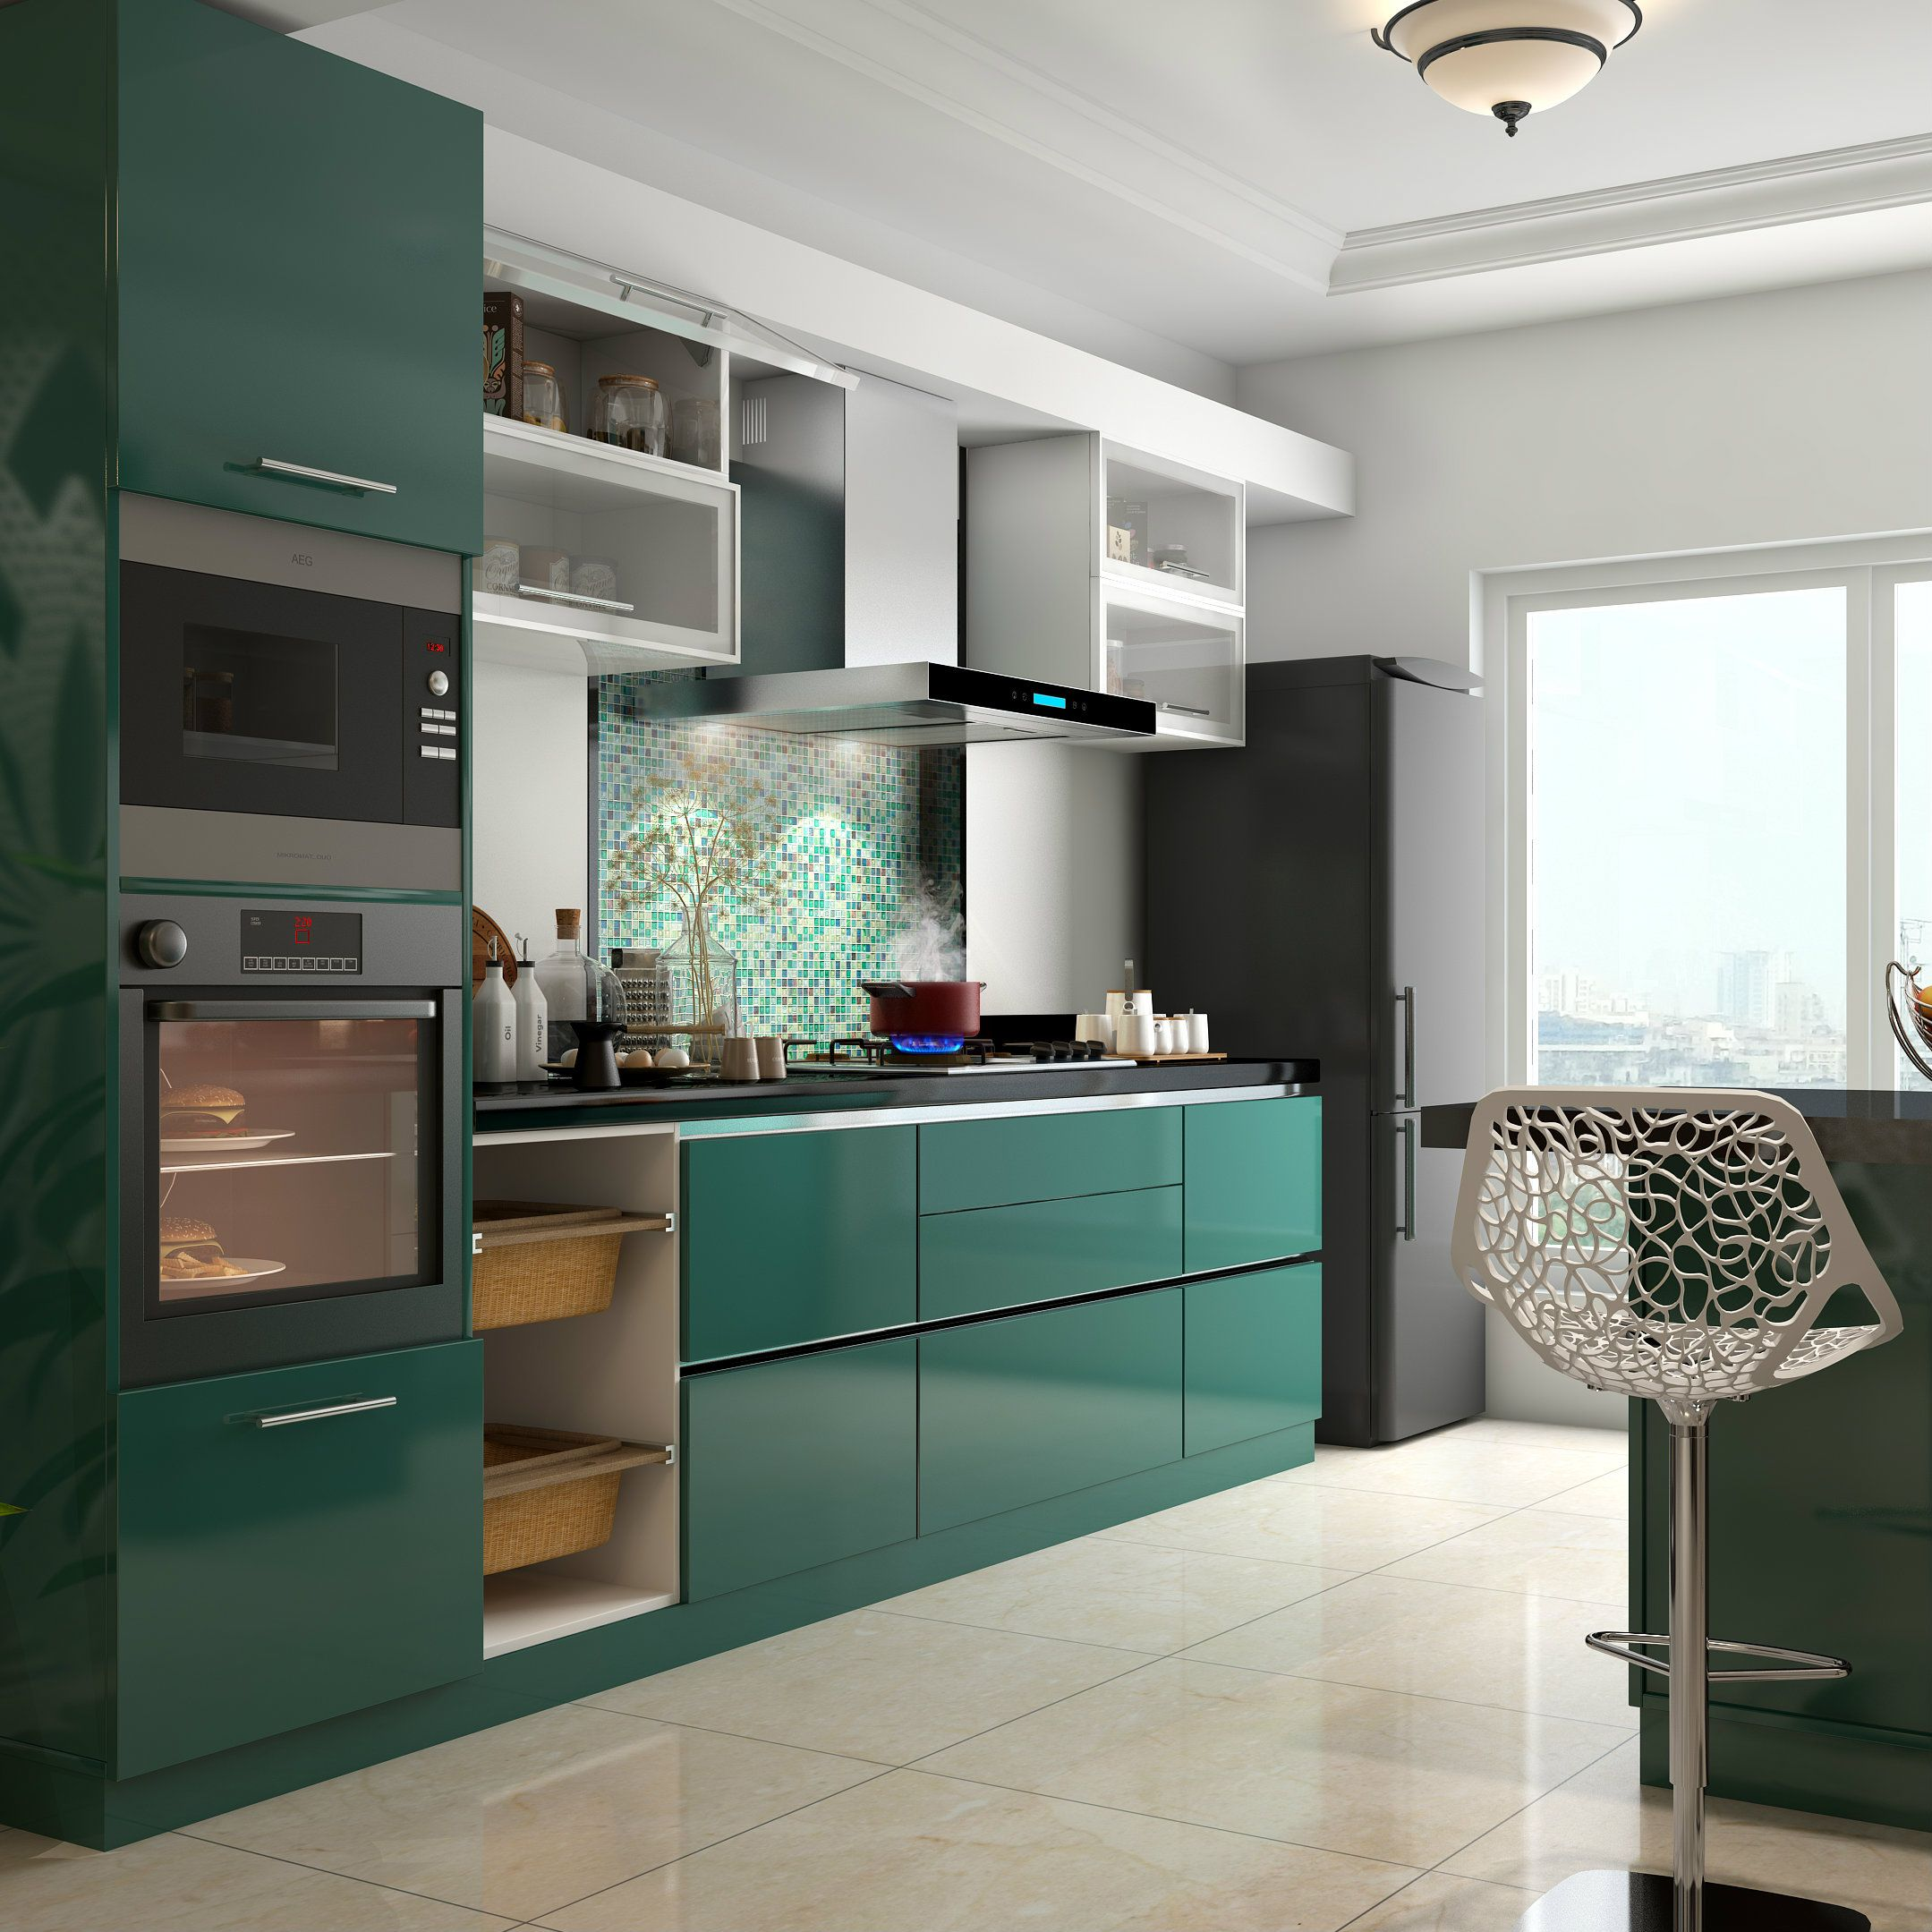 glossy green cabinets infuse vitality to this kitchen kitchen modular kitchen remodel small on kitchen island ideas india id=70192